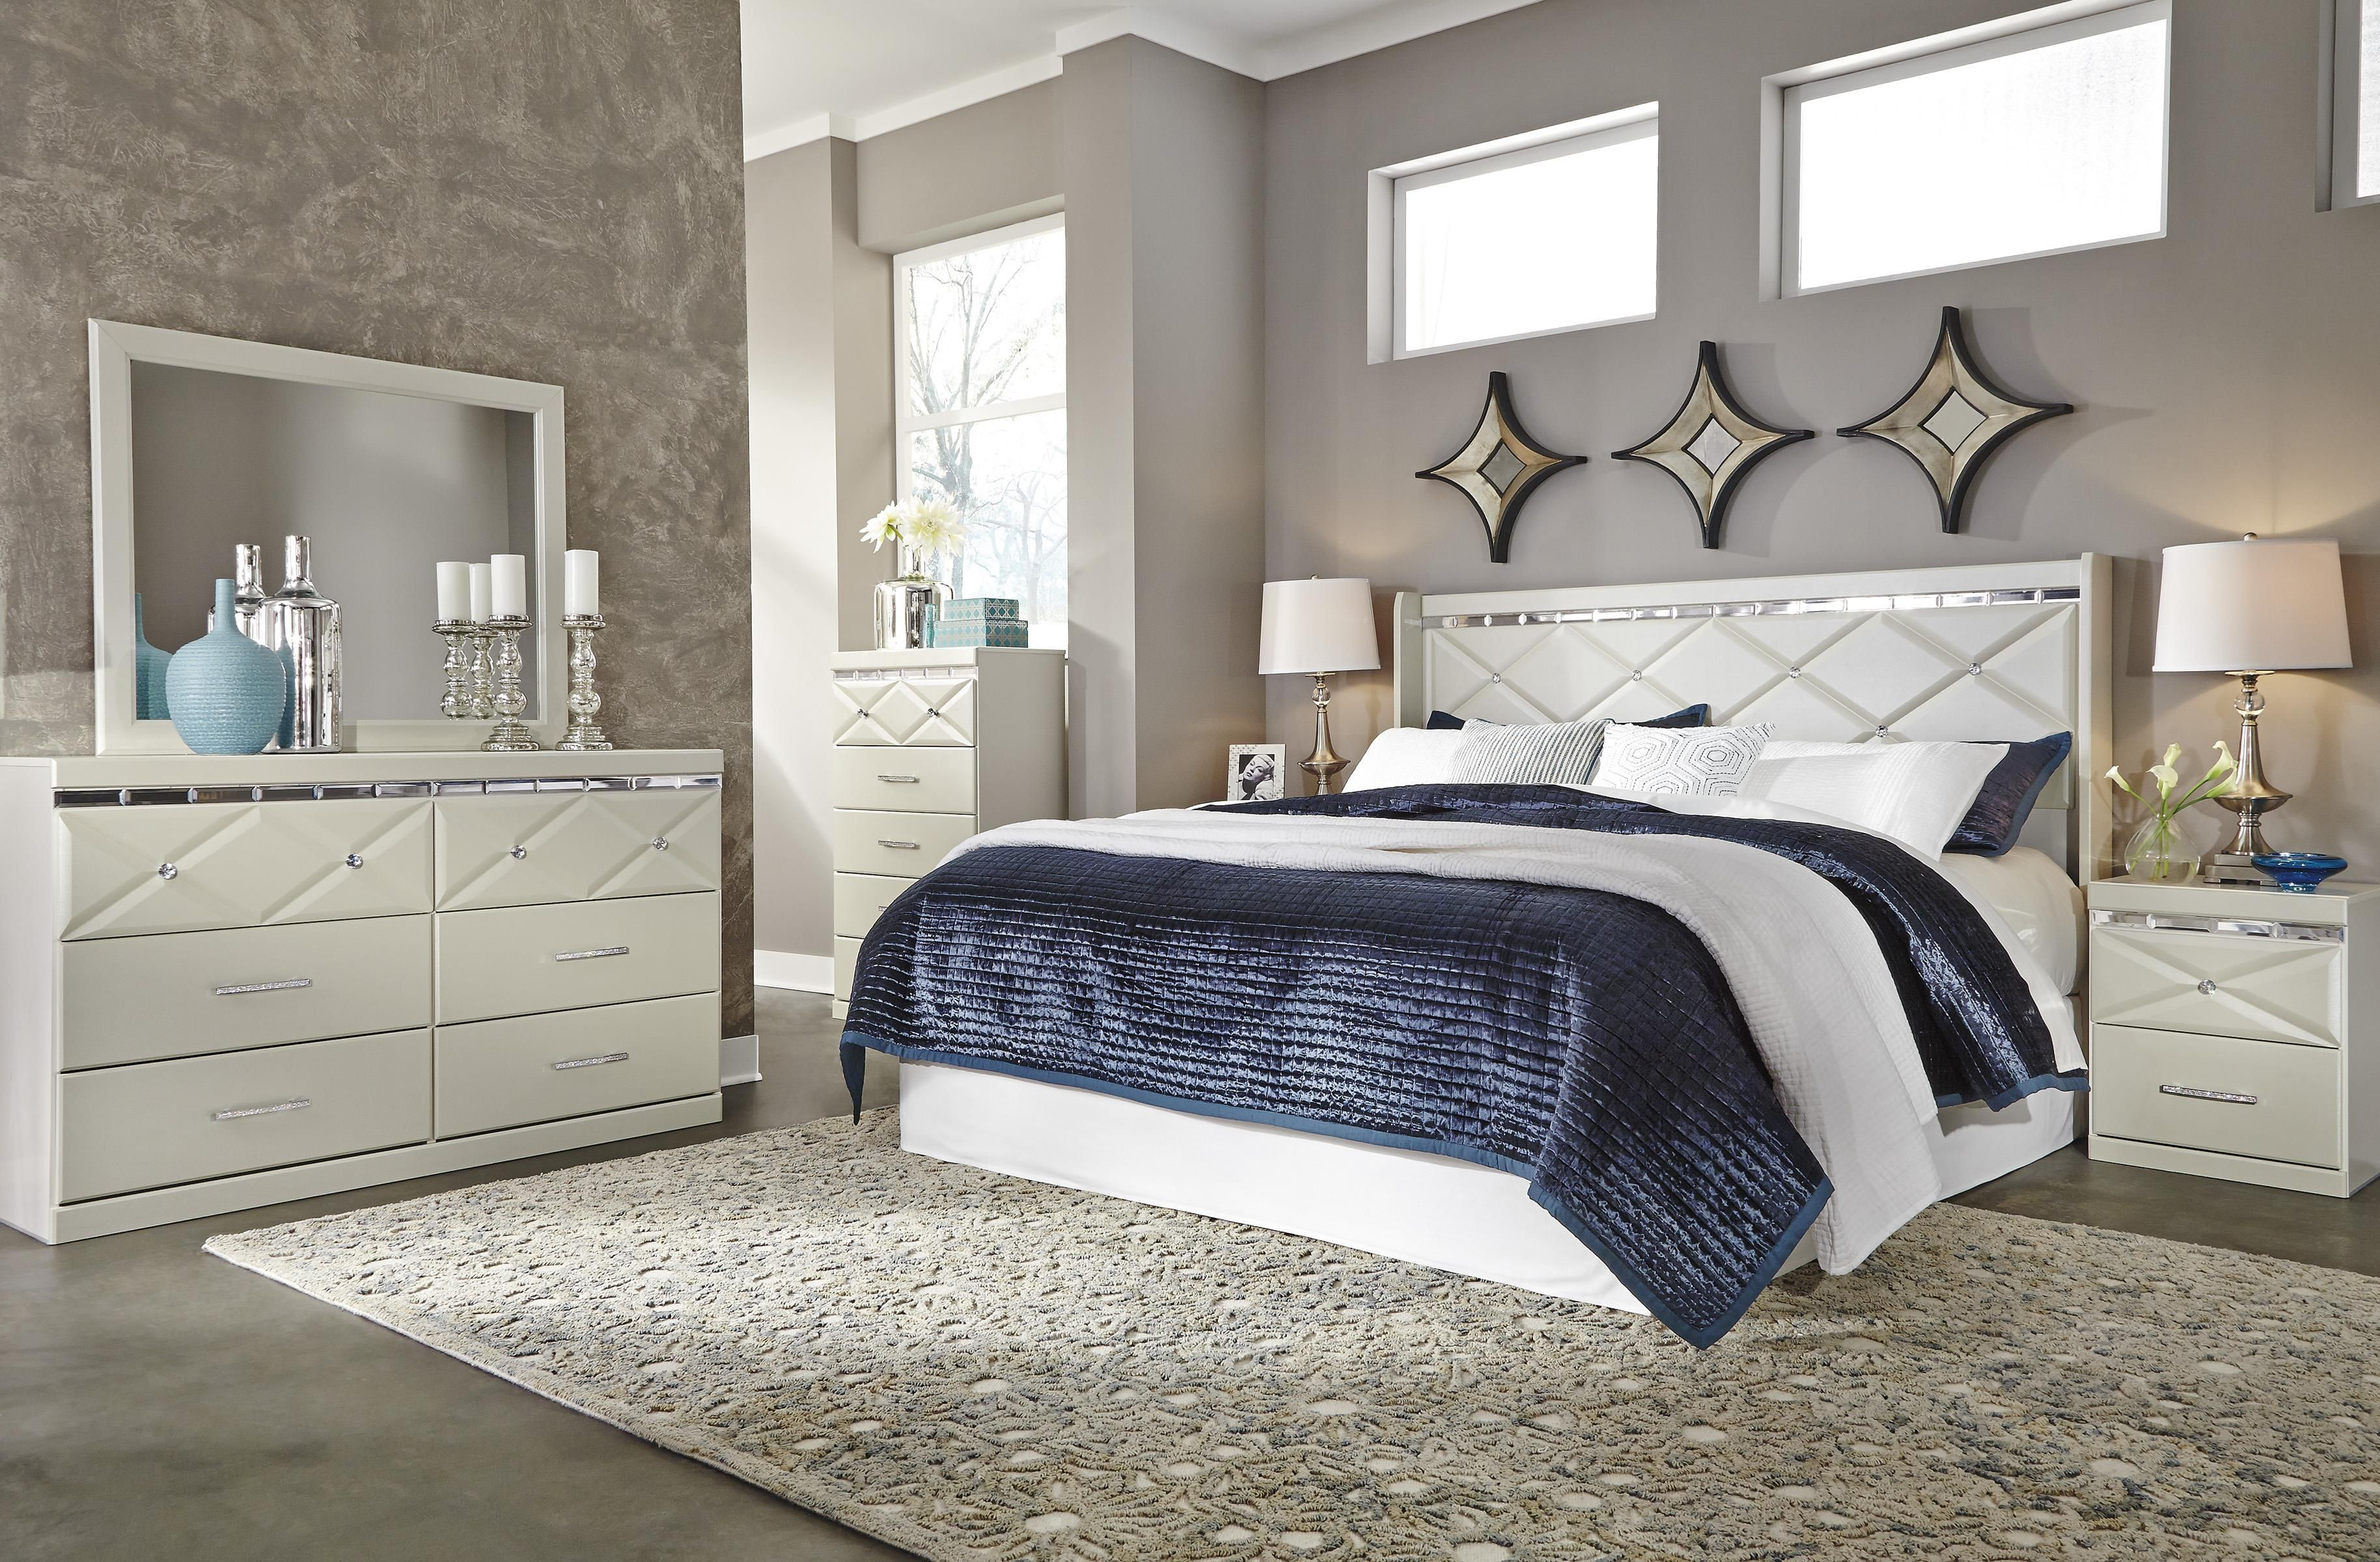 Master bedroom furniture  Pin by Lynn Frost on Decor  Pinterest  California king Furniture